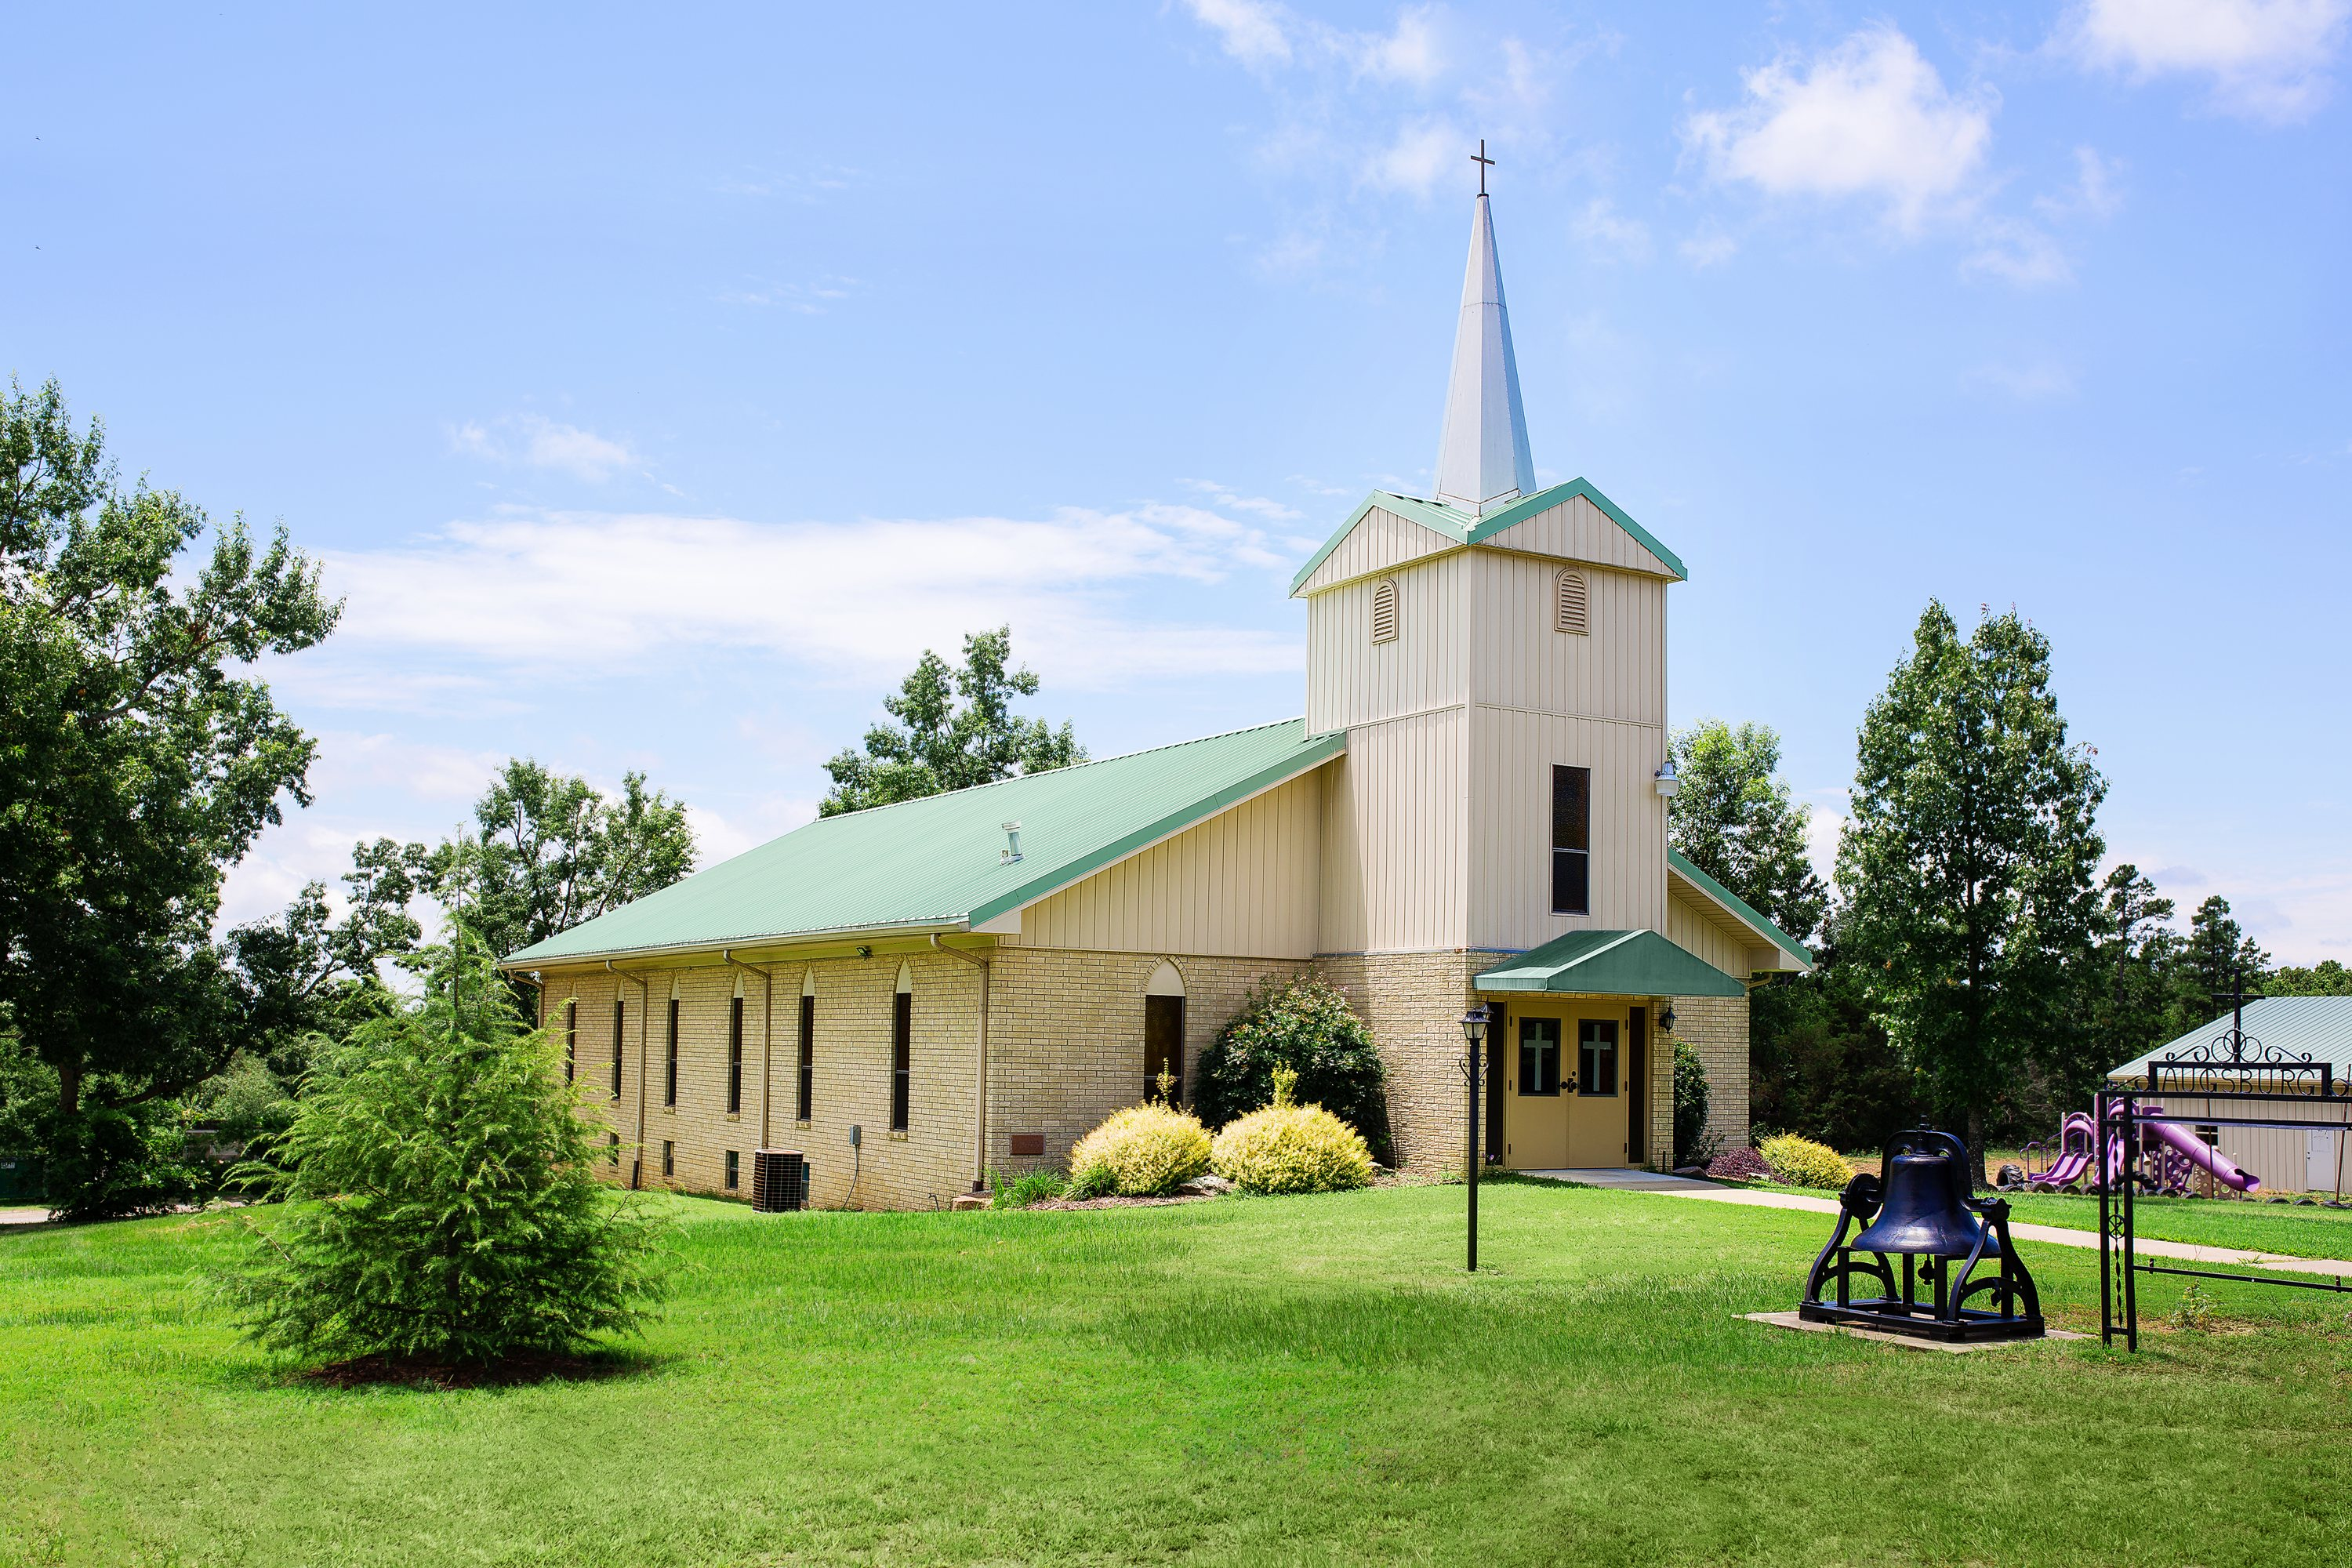 ZION LUTHERAN CHURCH AT AUGSBURG, AR